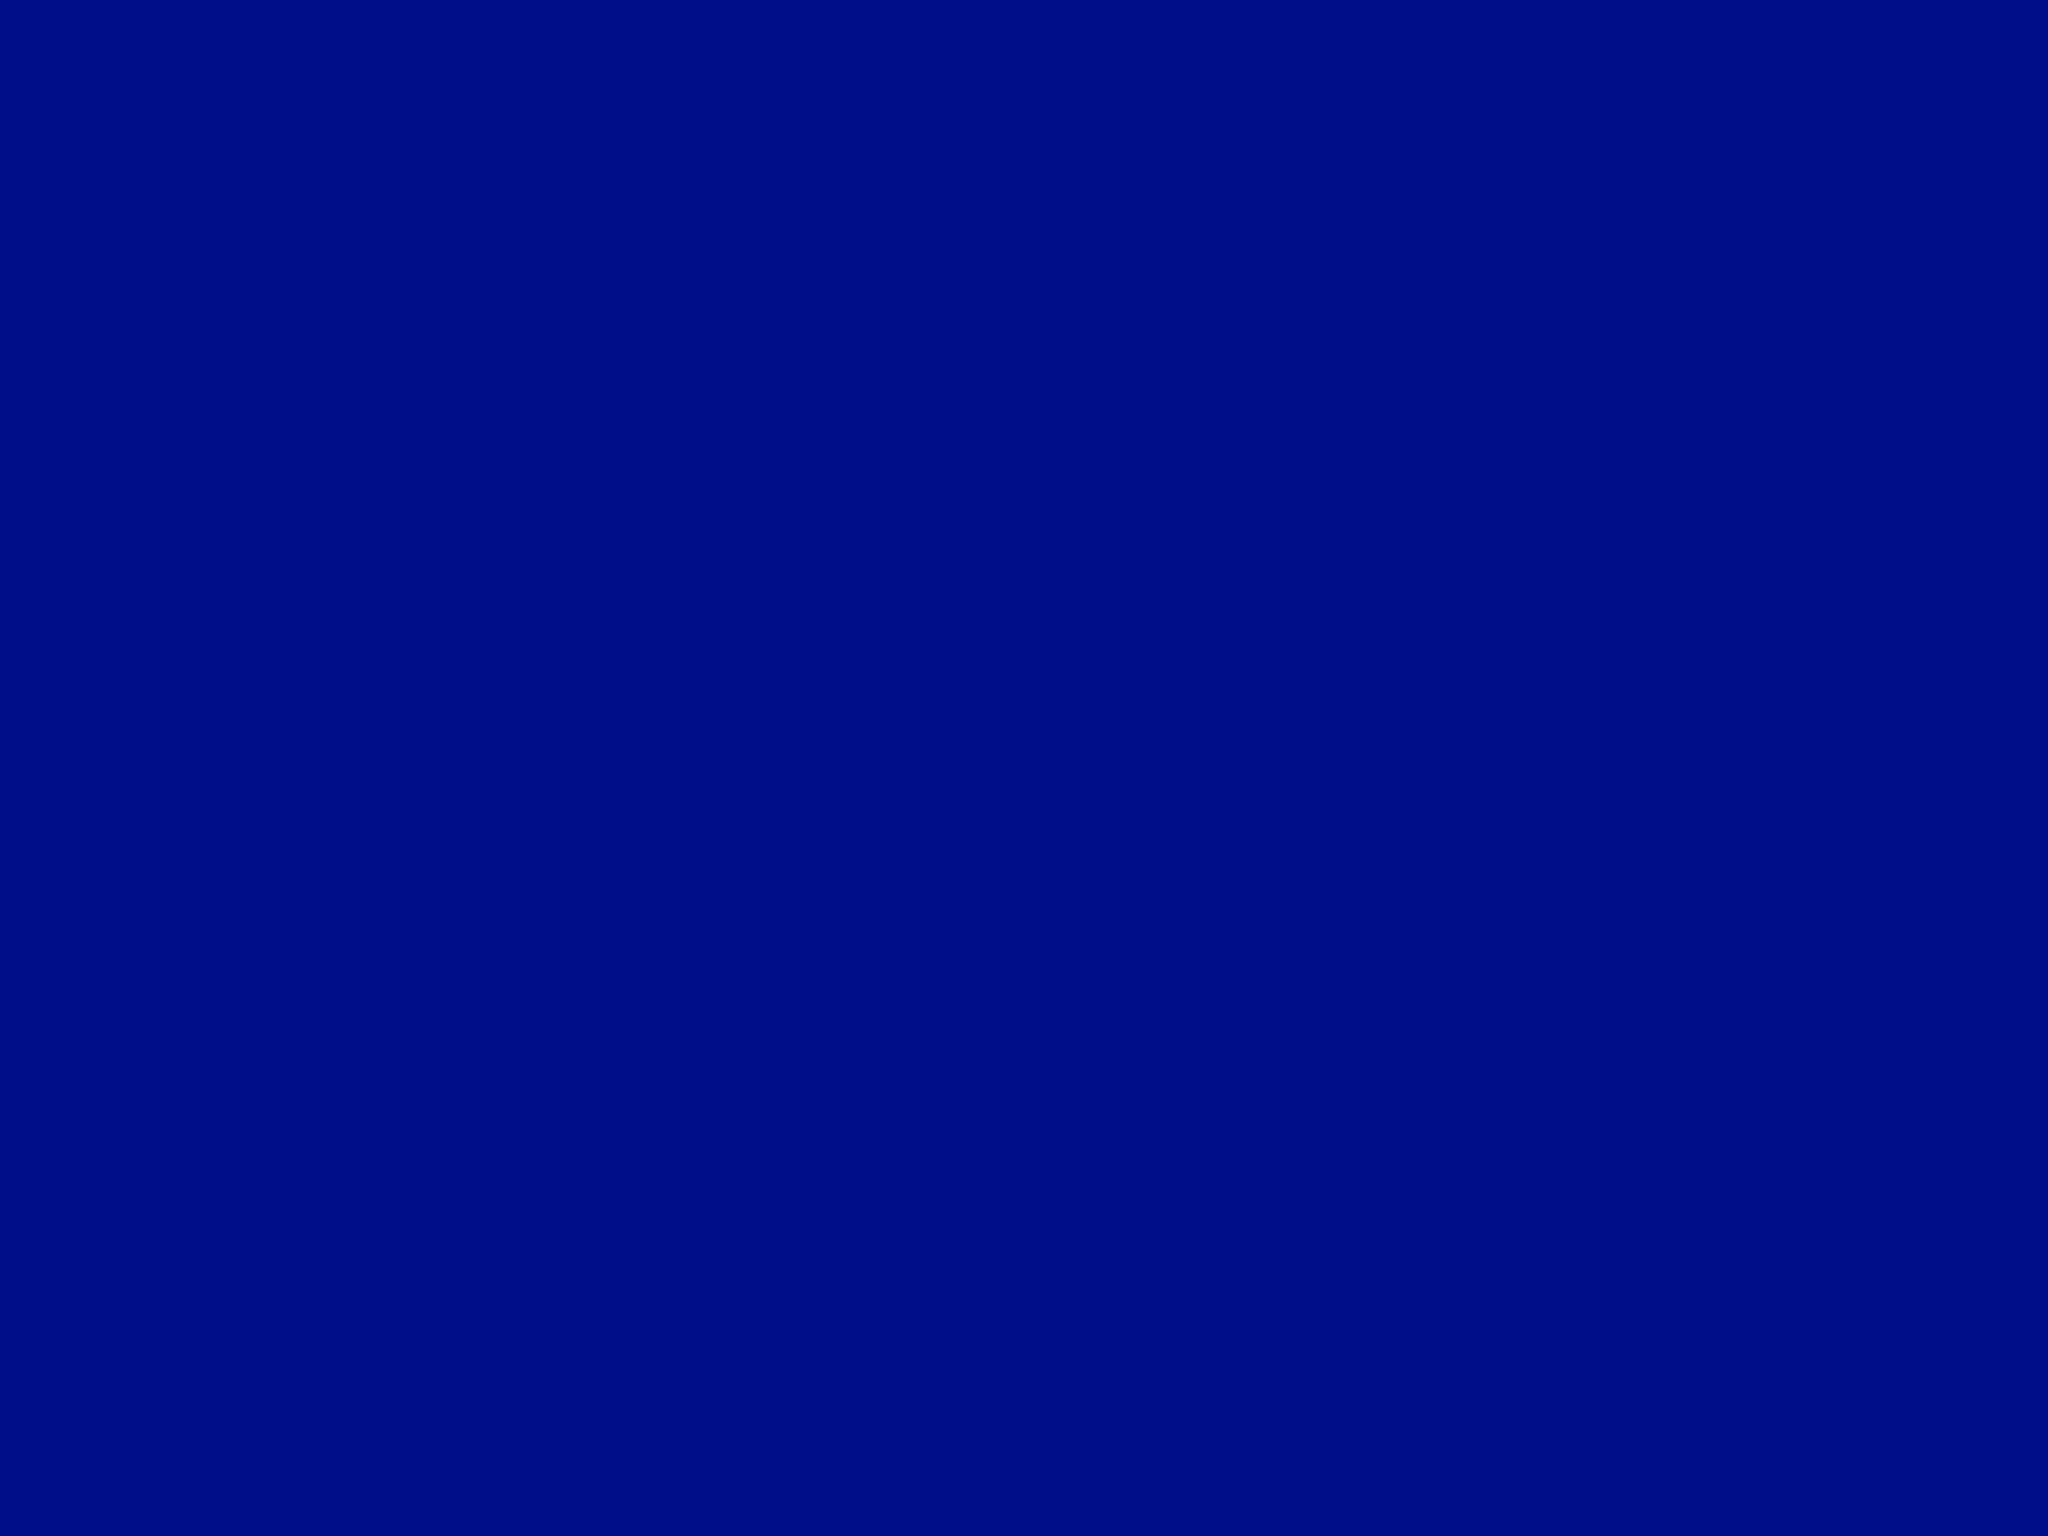 2048x1536 Phthalo Blue Solid Color Background